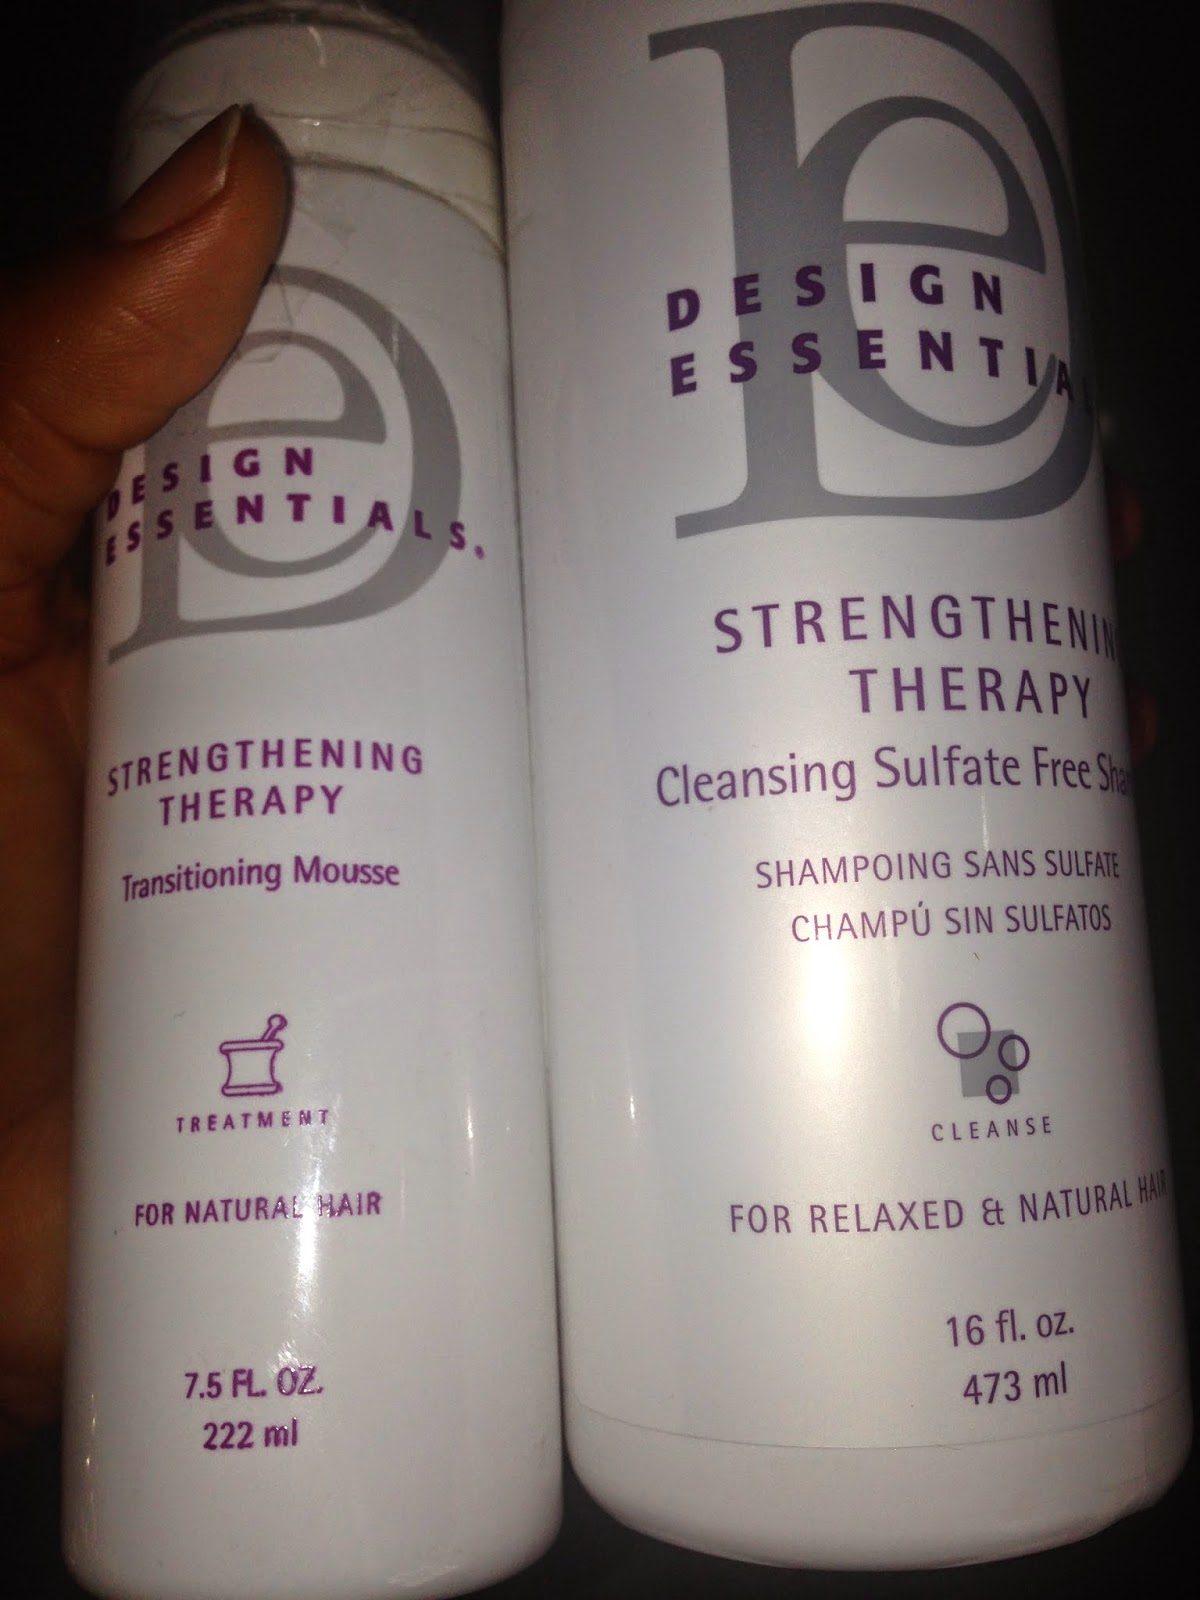 Design Essentials Shampoo Wwwtopsimagescom